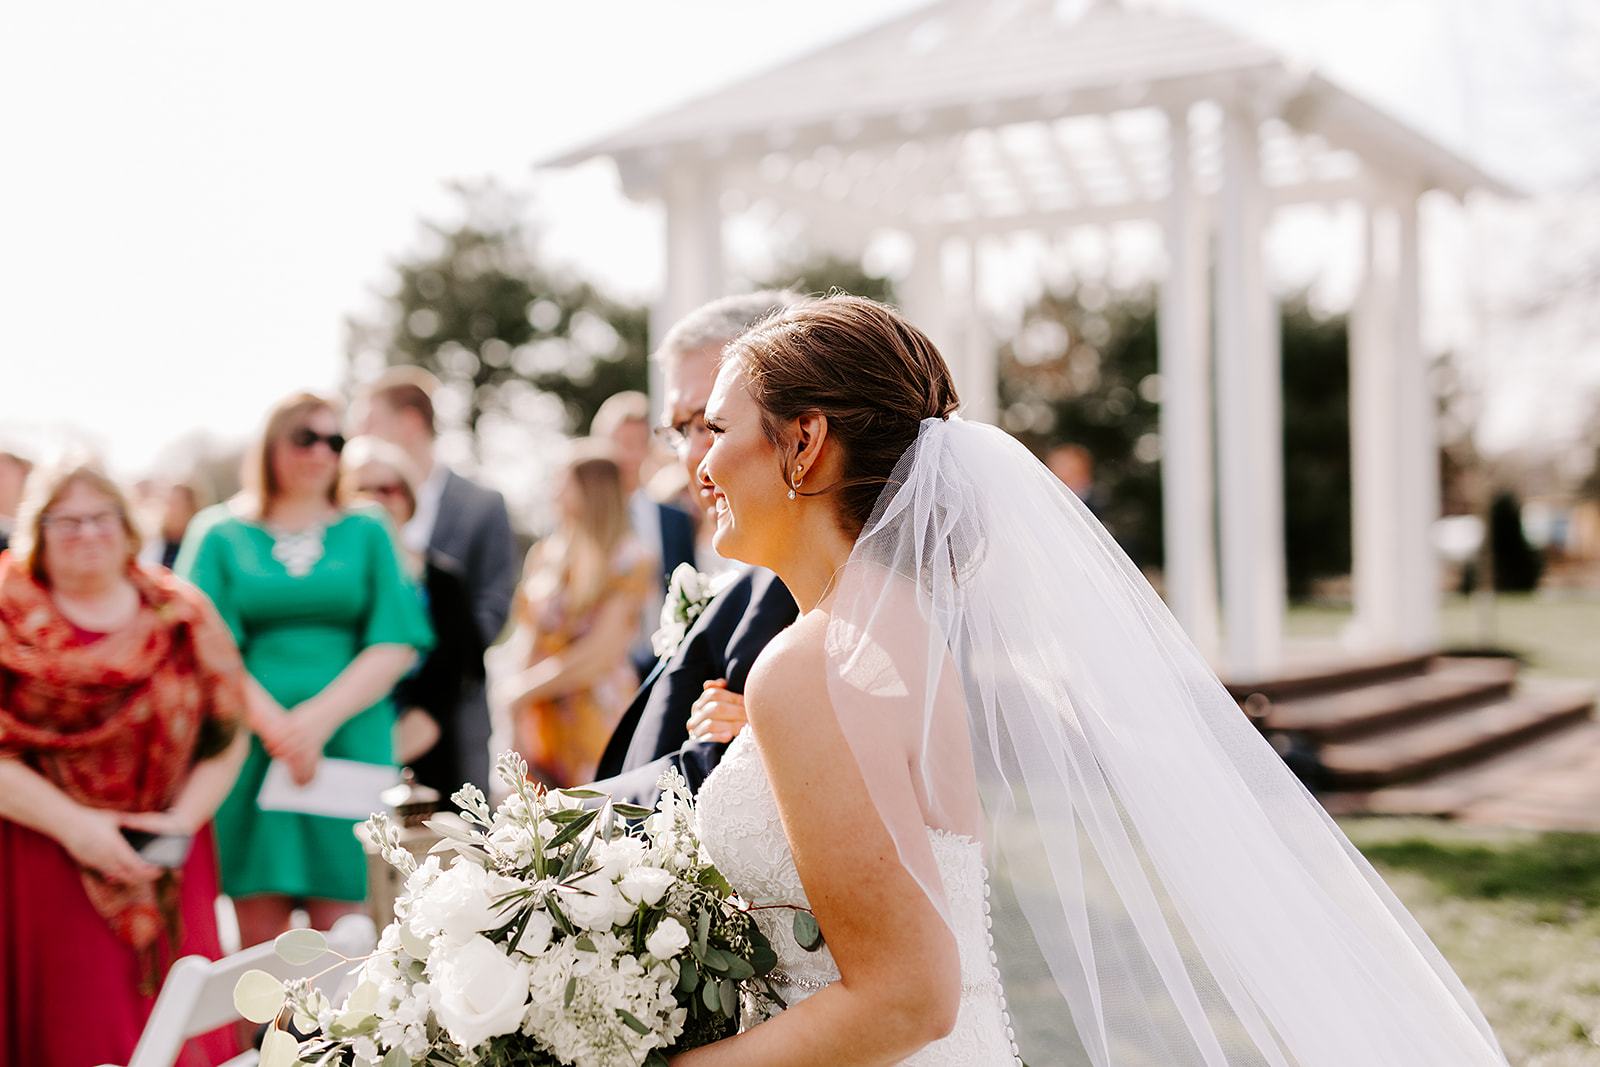 Lauren_and_Andrew_Mustard_Seed_Gardens_Noblesville_Indiana_by_Emily_Wehner_Photography-505.jpg